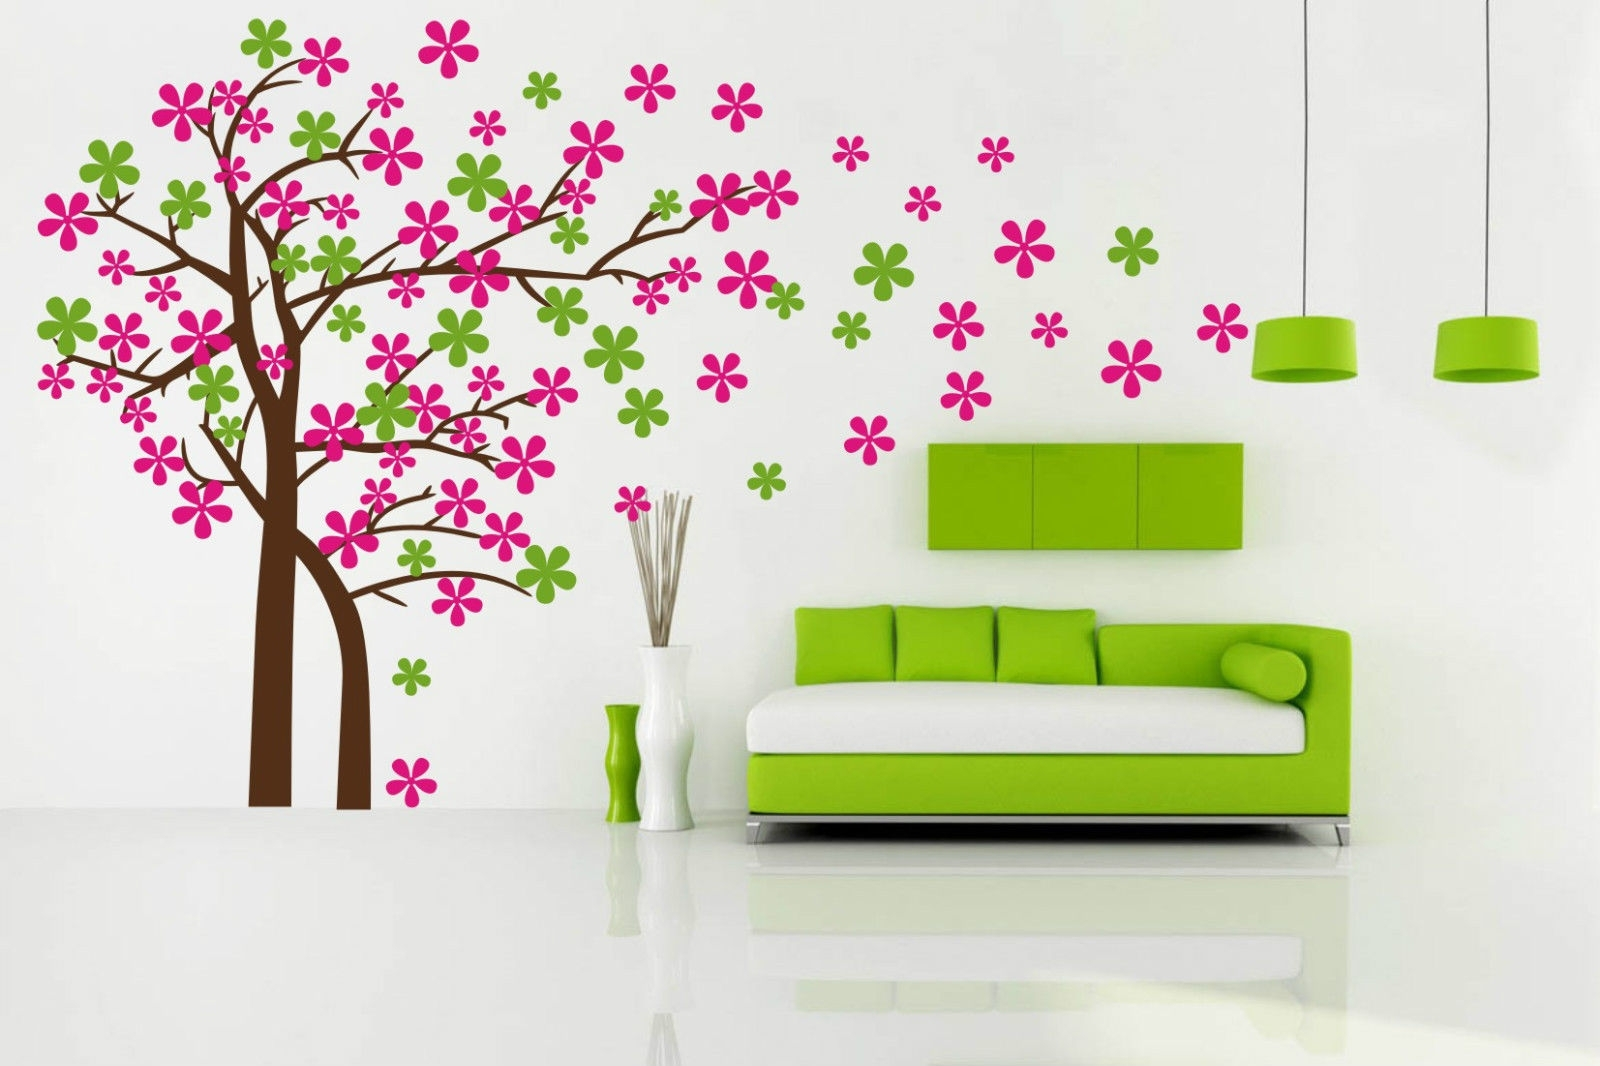 Blowing Tree Removable Wall Art Stickers Kids Nursery Baby Room Throughout Current Baby Room Wall Art (Gallery 18 of 20)